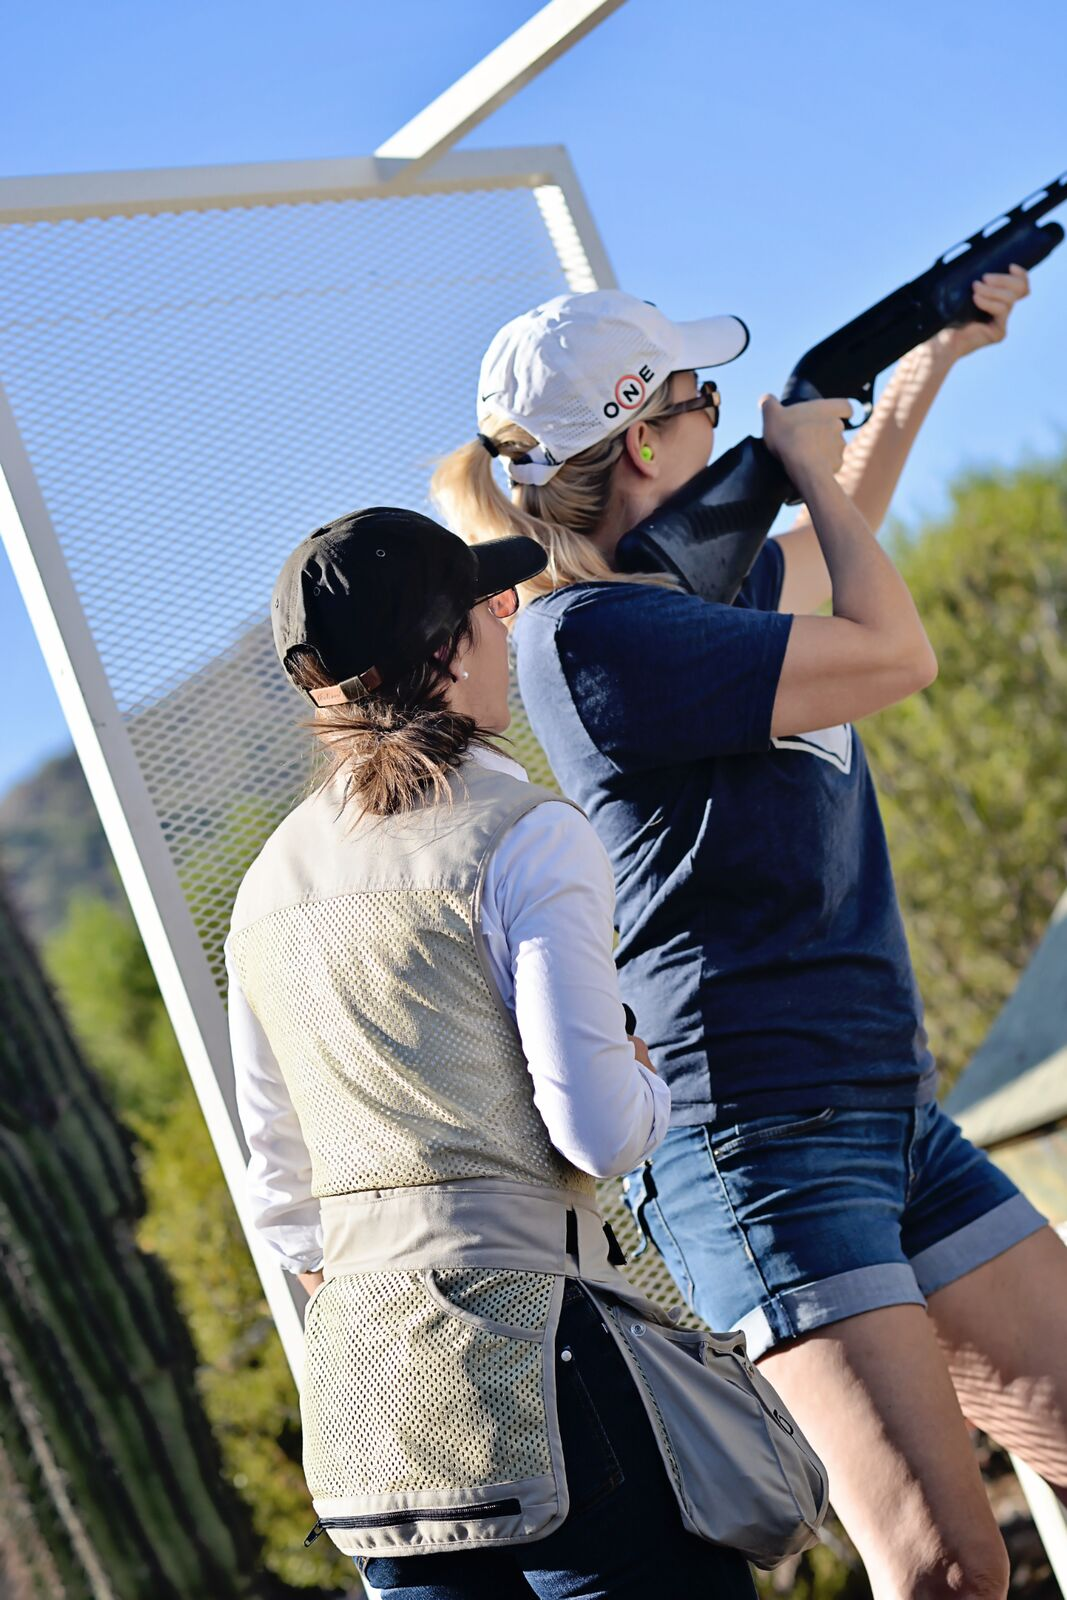 Join us April 8 - We will meet at Barnone before heading out to Rio Salado Sportsman's Club in Mesa. The $30 fee includes shotgun shells, target, and shotgun. This class will be led by Annie Johnston, an NSCA Level I instructor. Space is limited, register today. All ages and skill levels are welcome to attend!